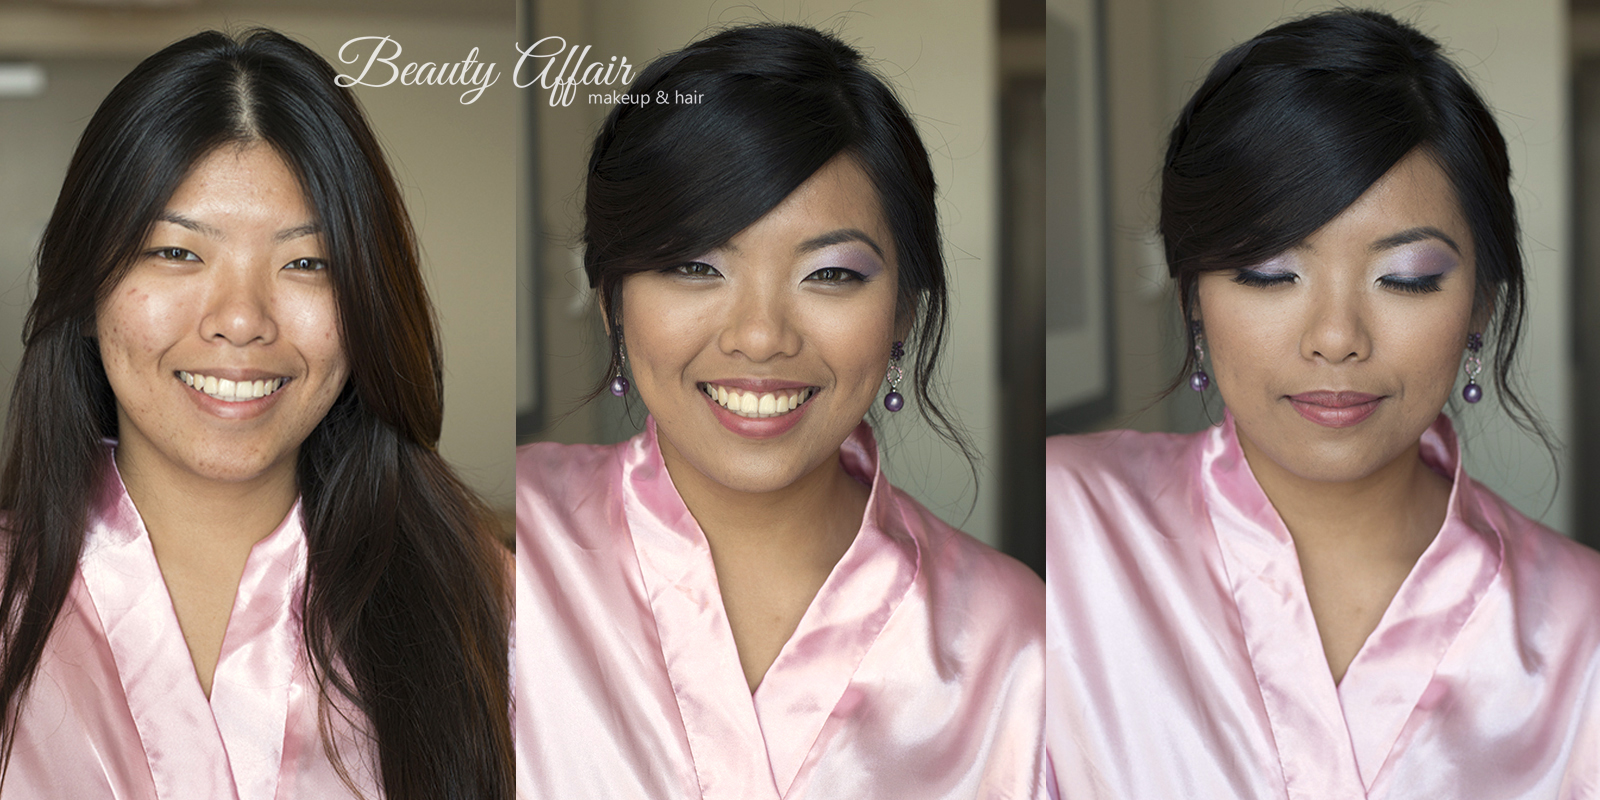 Beauty Affair makeup and makeup Los Angeles before and after bridesmaid pink lips purple eyeshadow